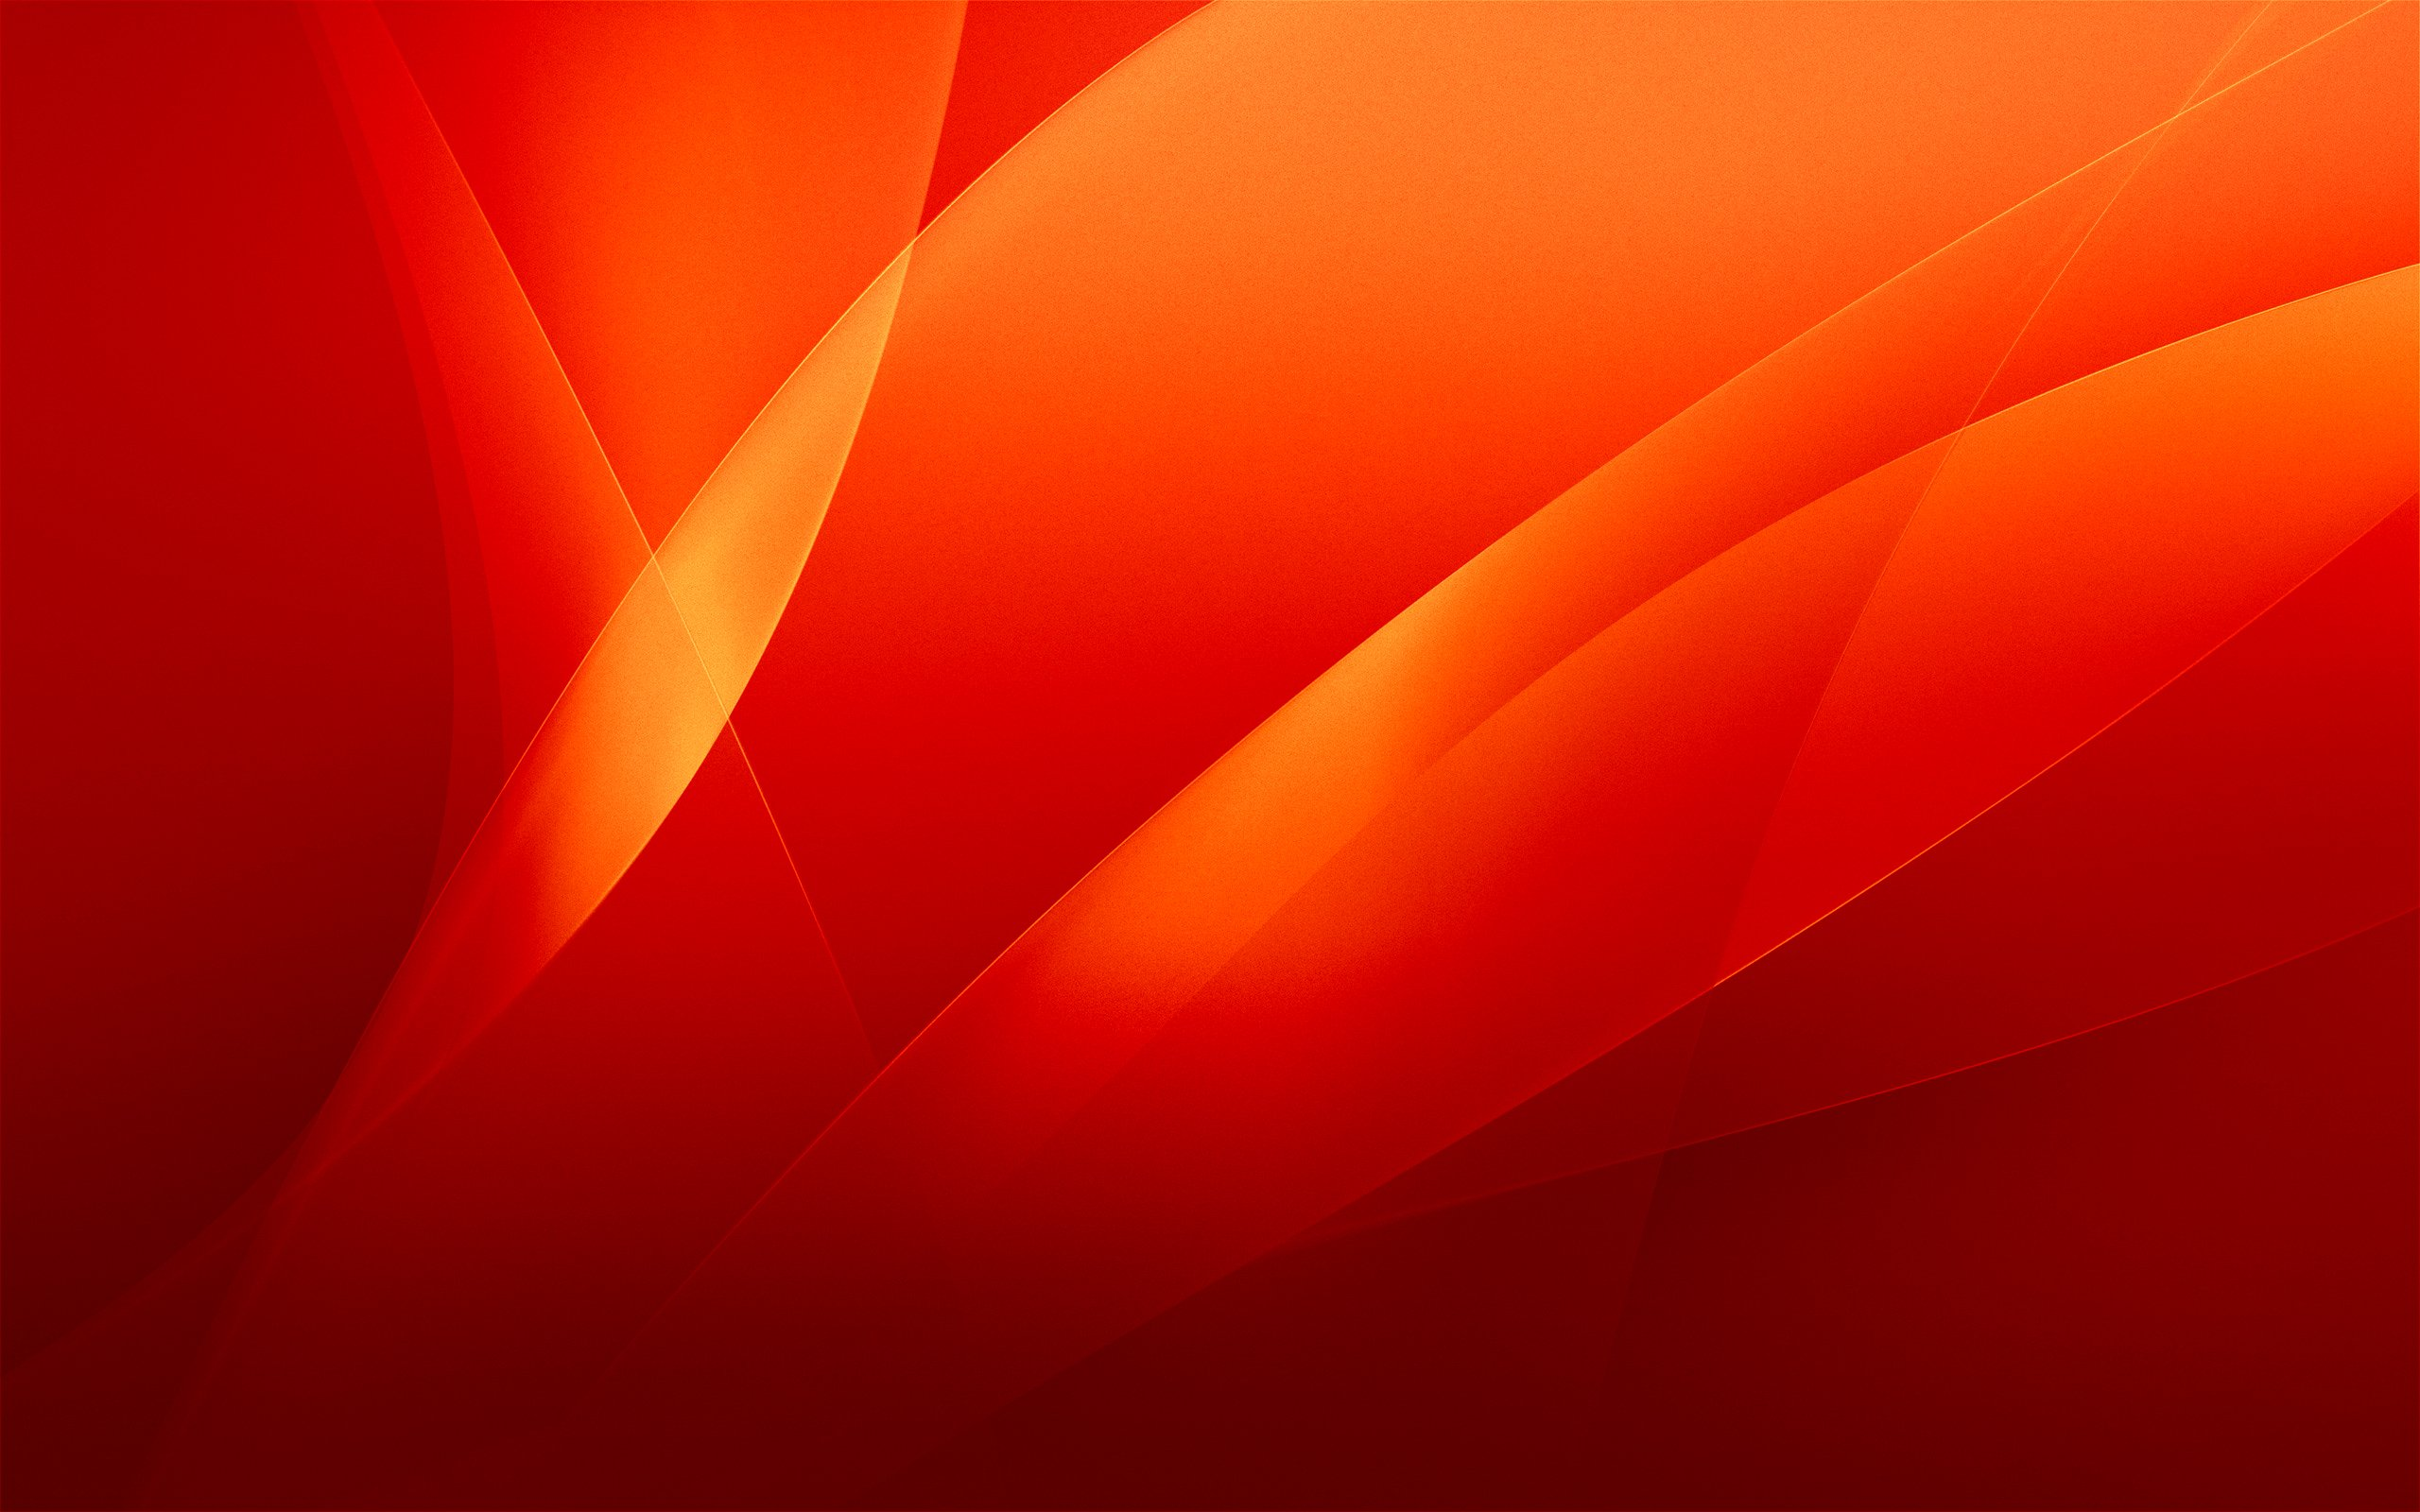 Pictures Of Red Backgrounds - WallpaperSafari